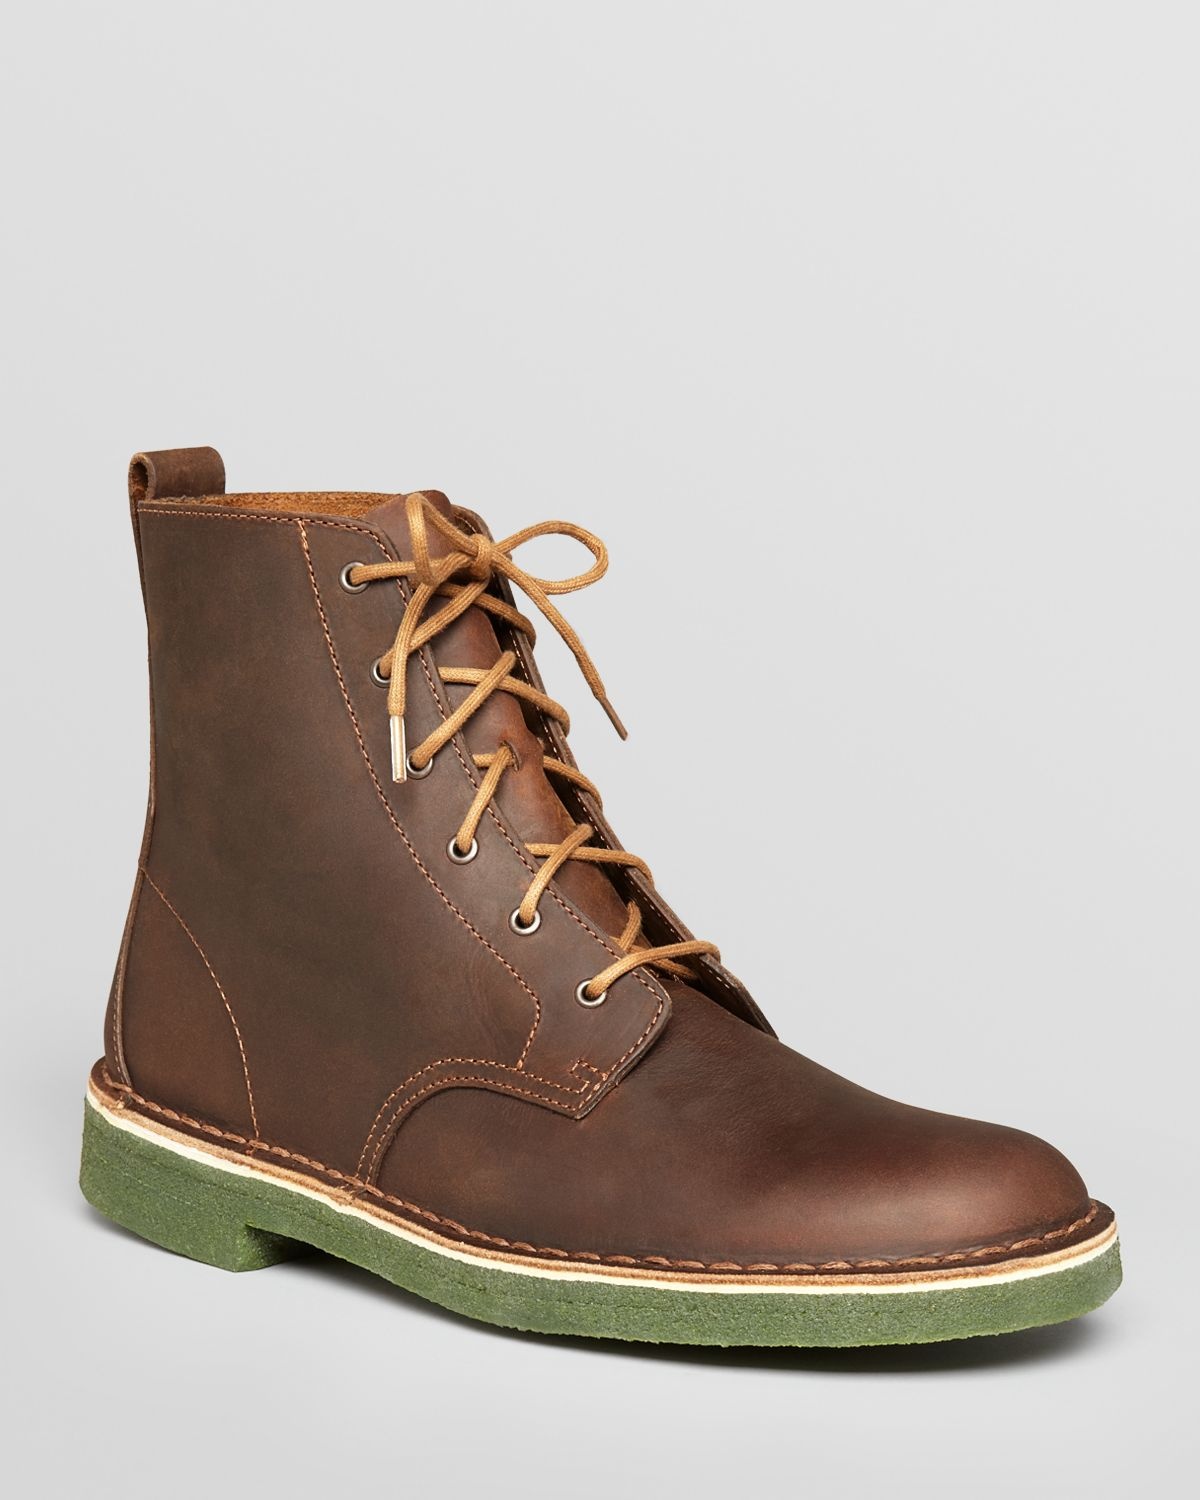 clarks desert mali leather boots in brown for men lyst